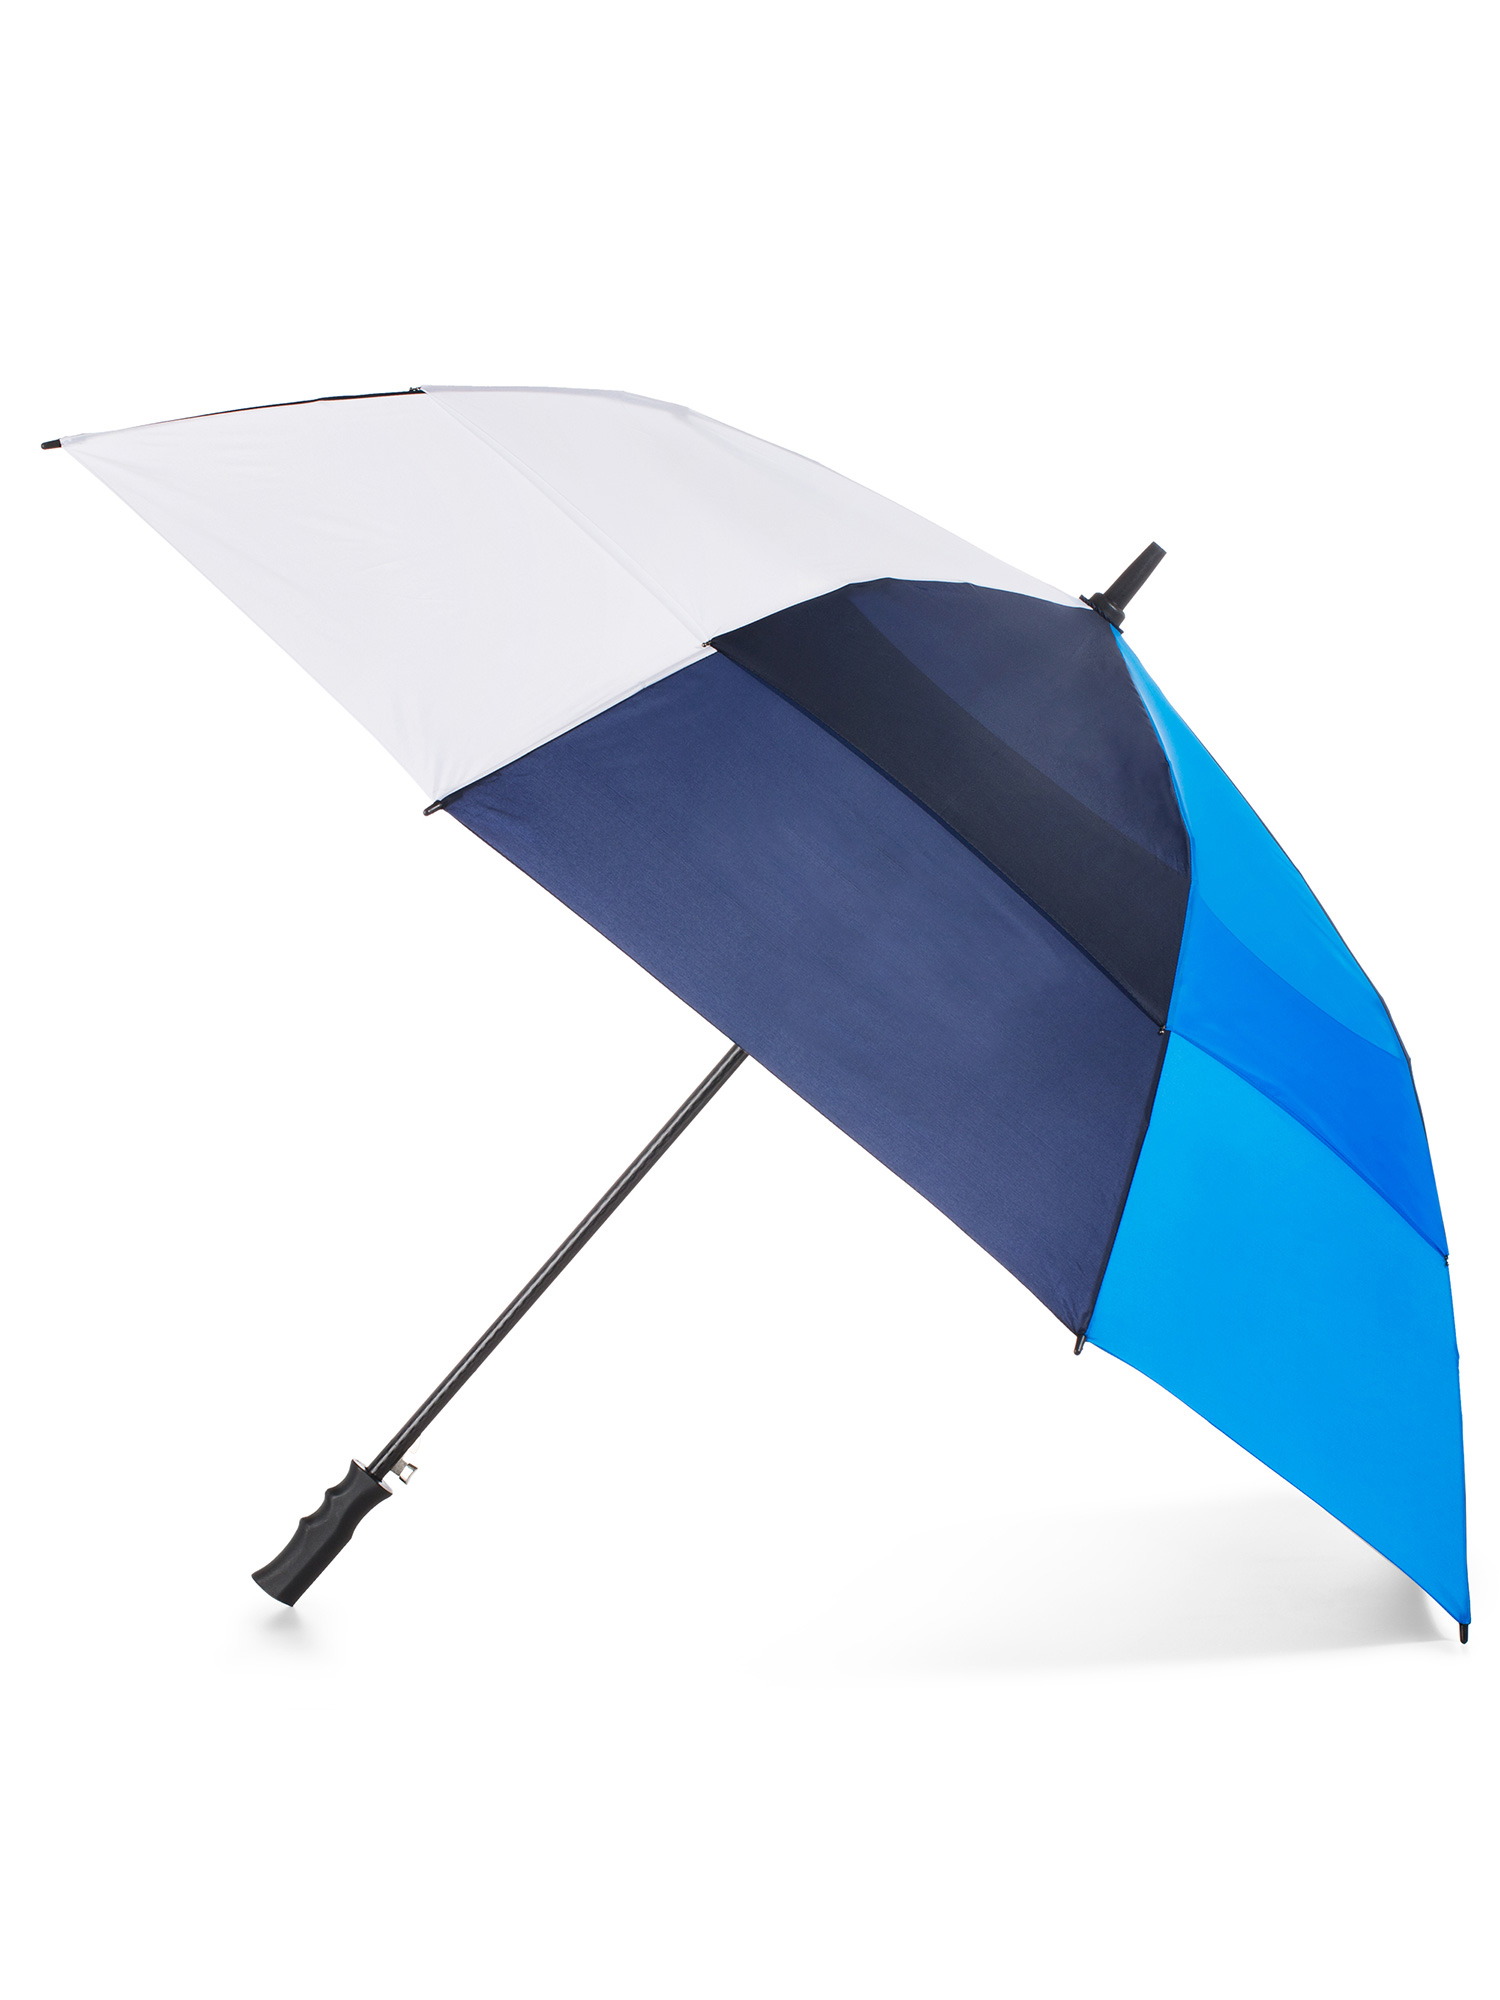 Totes Stormbeater Vented Golf Umbrella, 60""